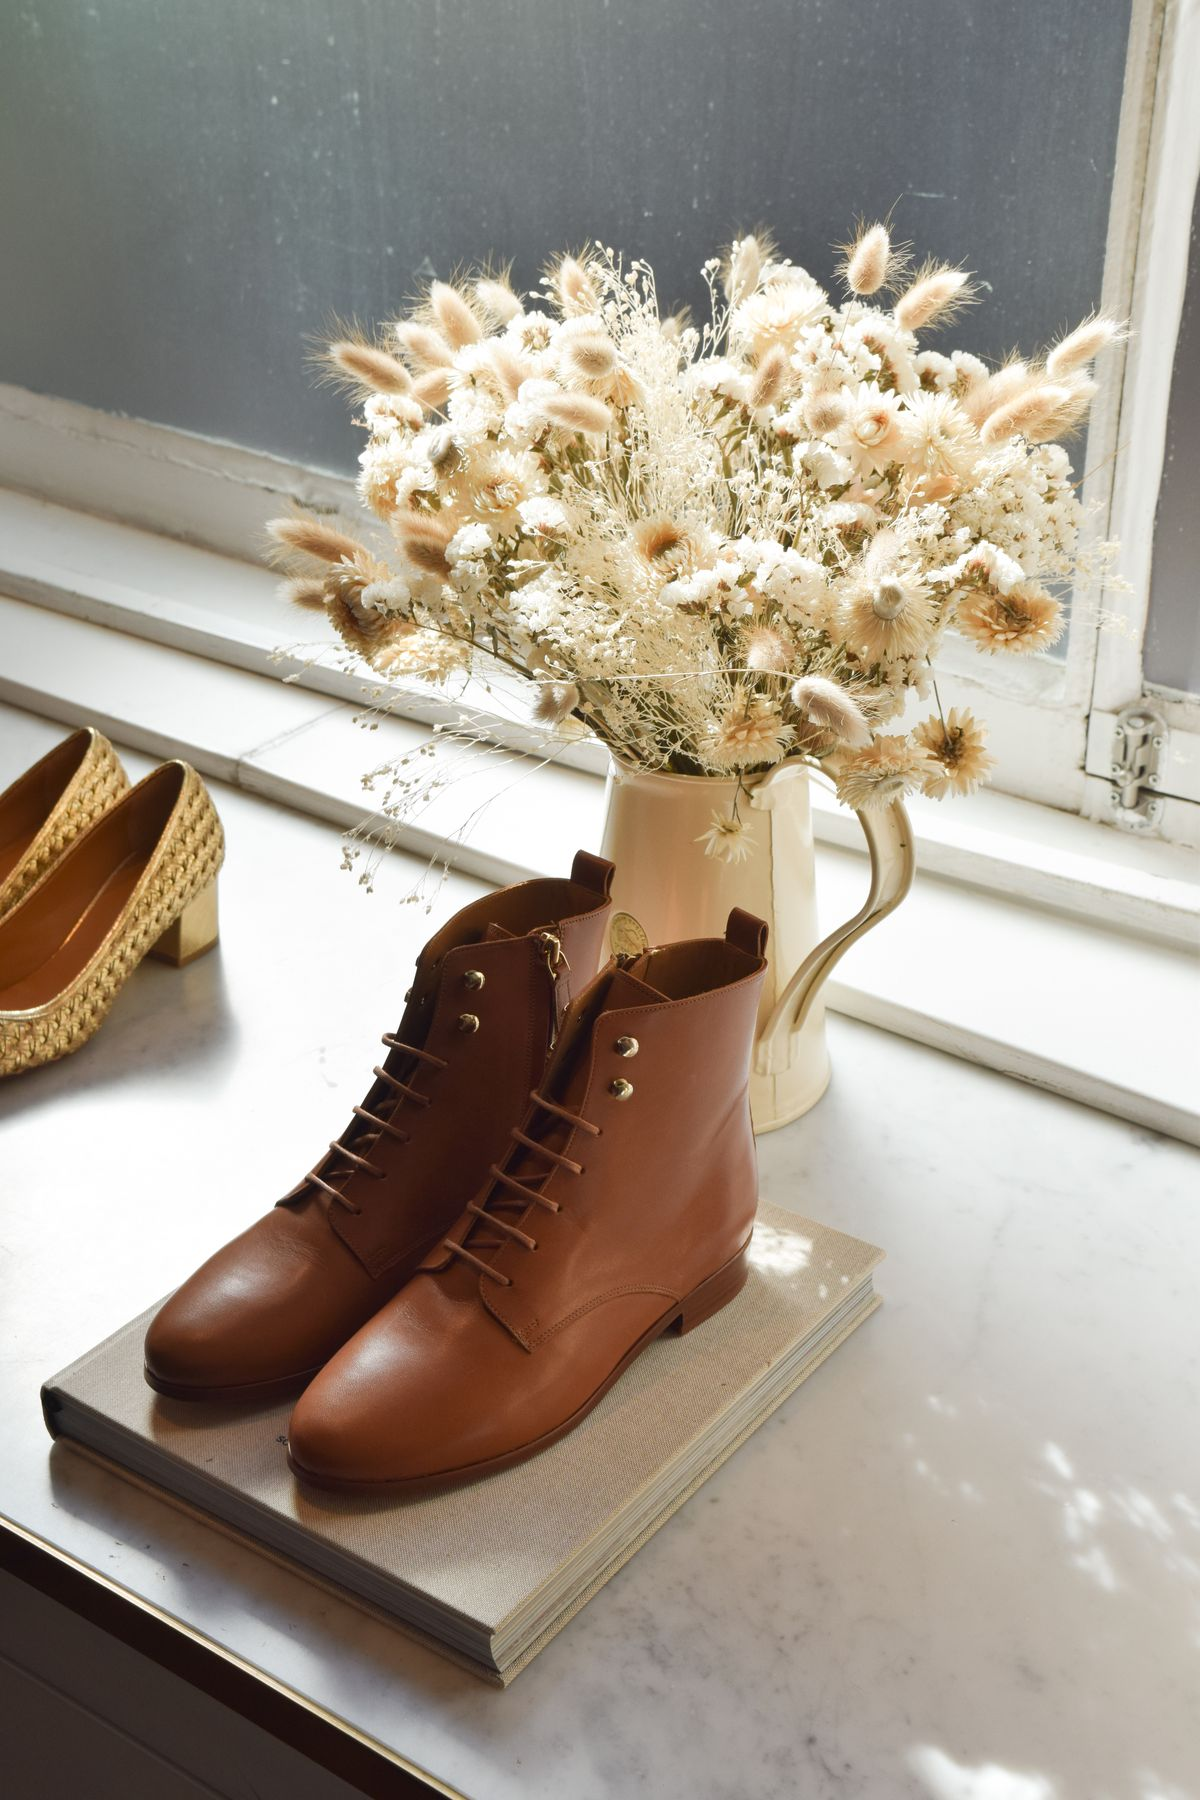 Sézane Fall Collection Leather Boots